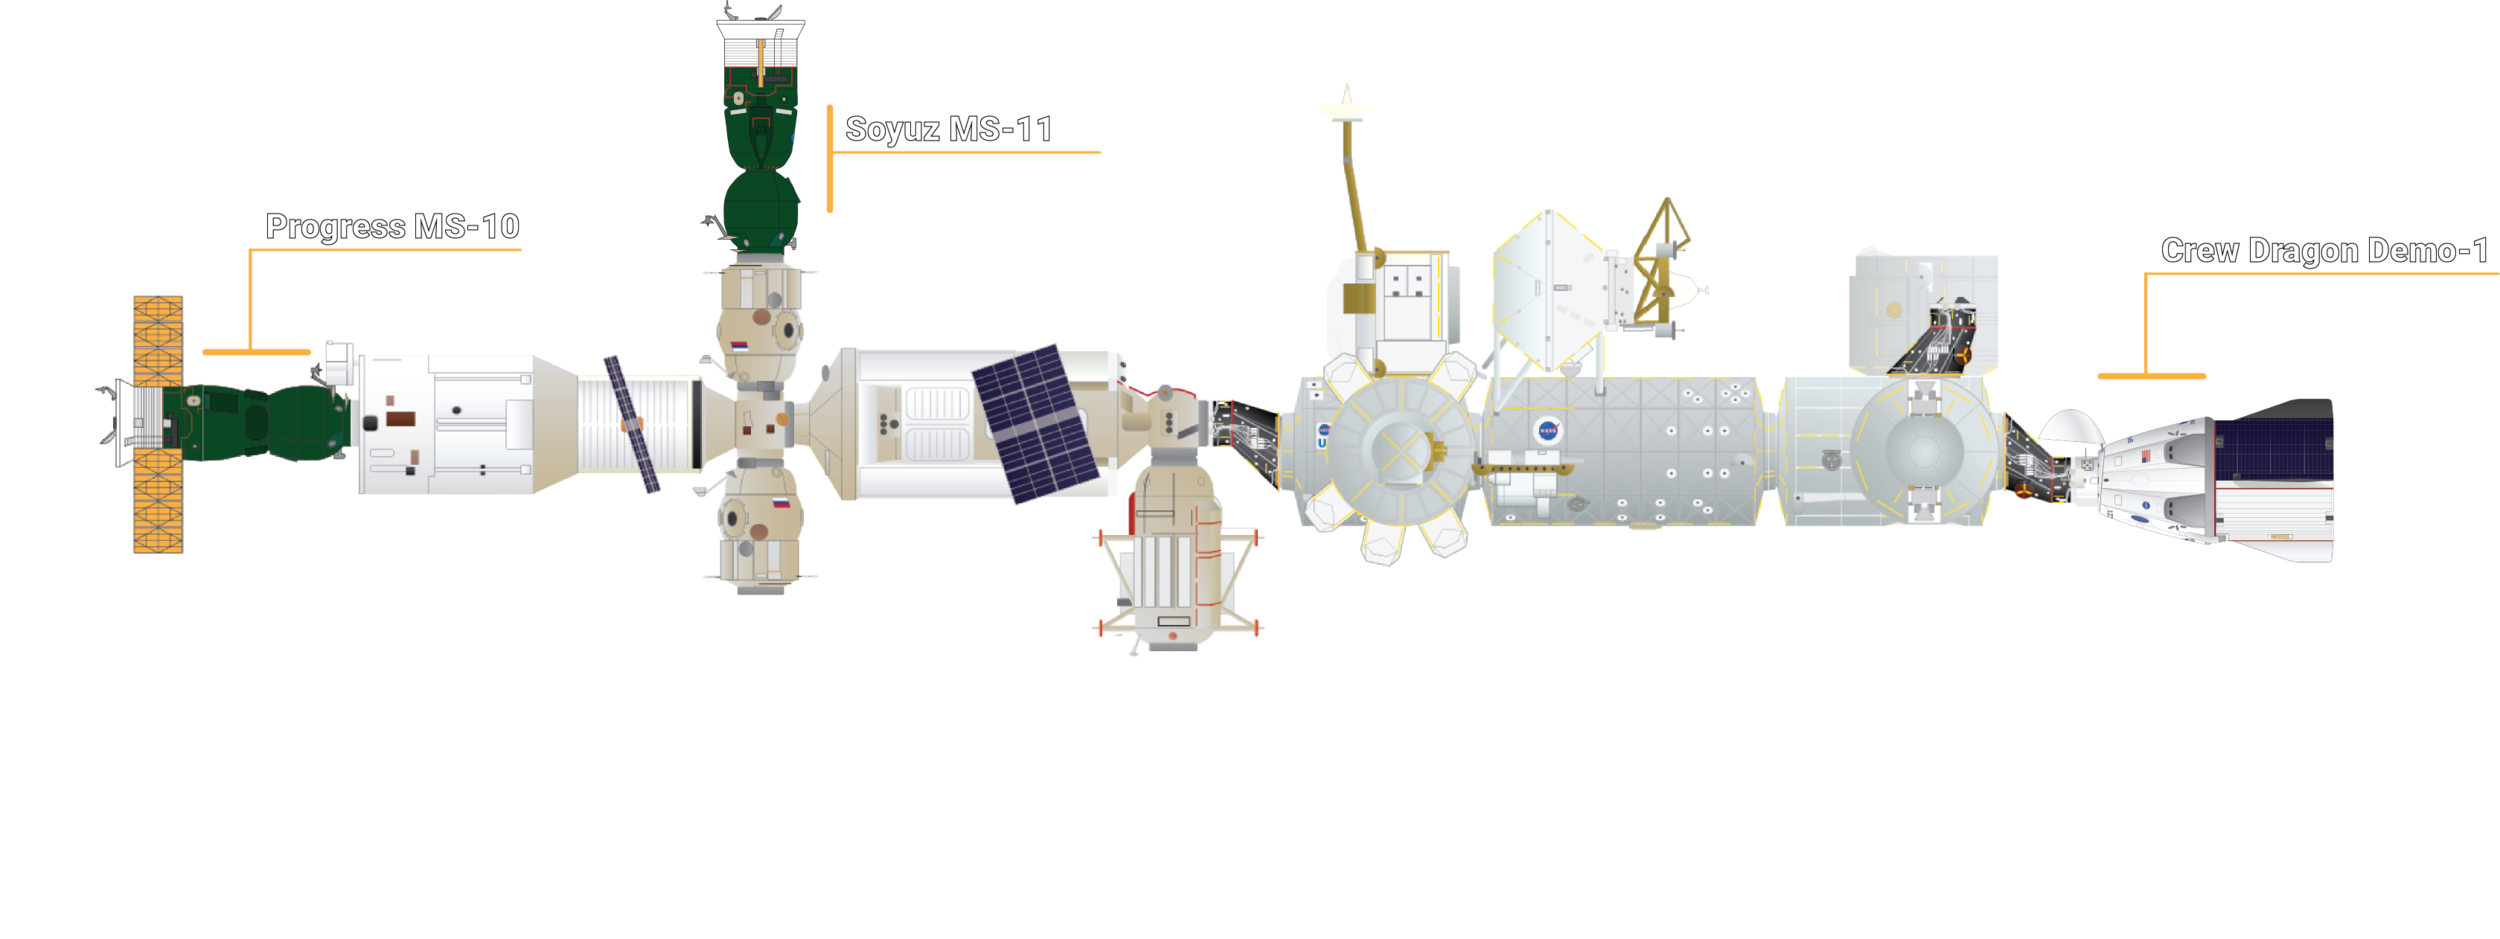 ISS-Docking-Configuration-03Mar2019A.png